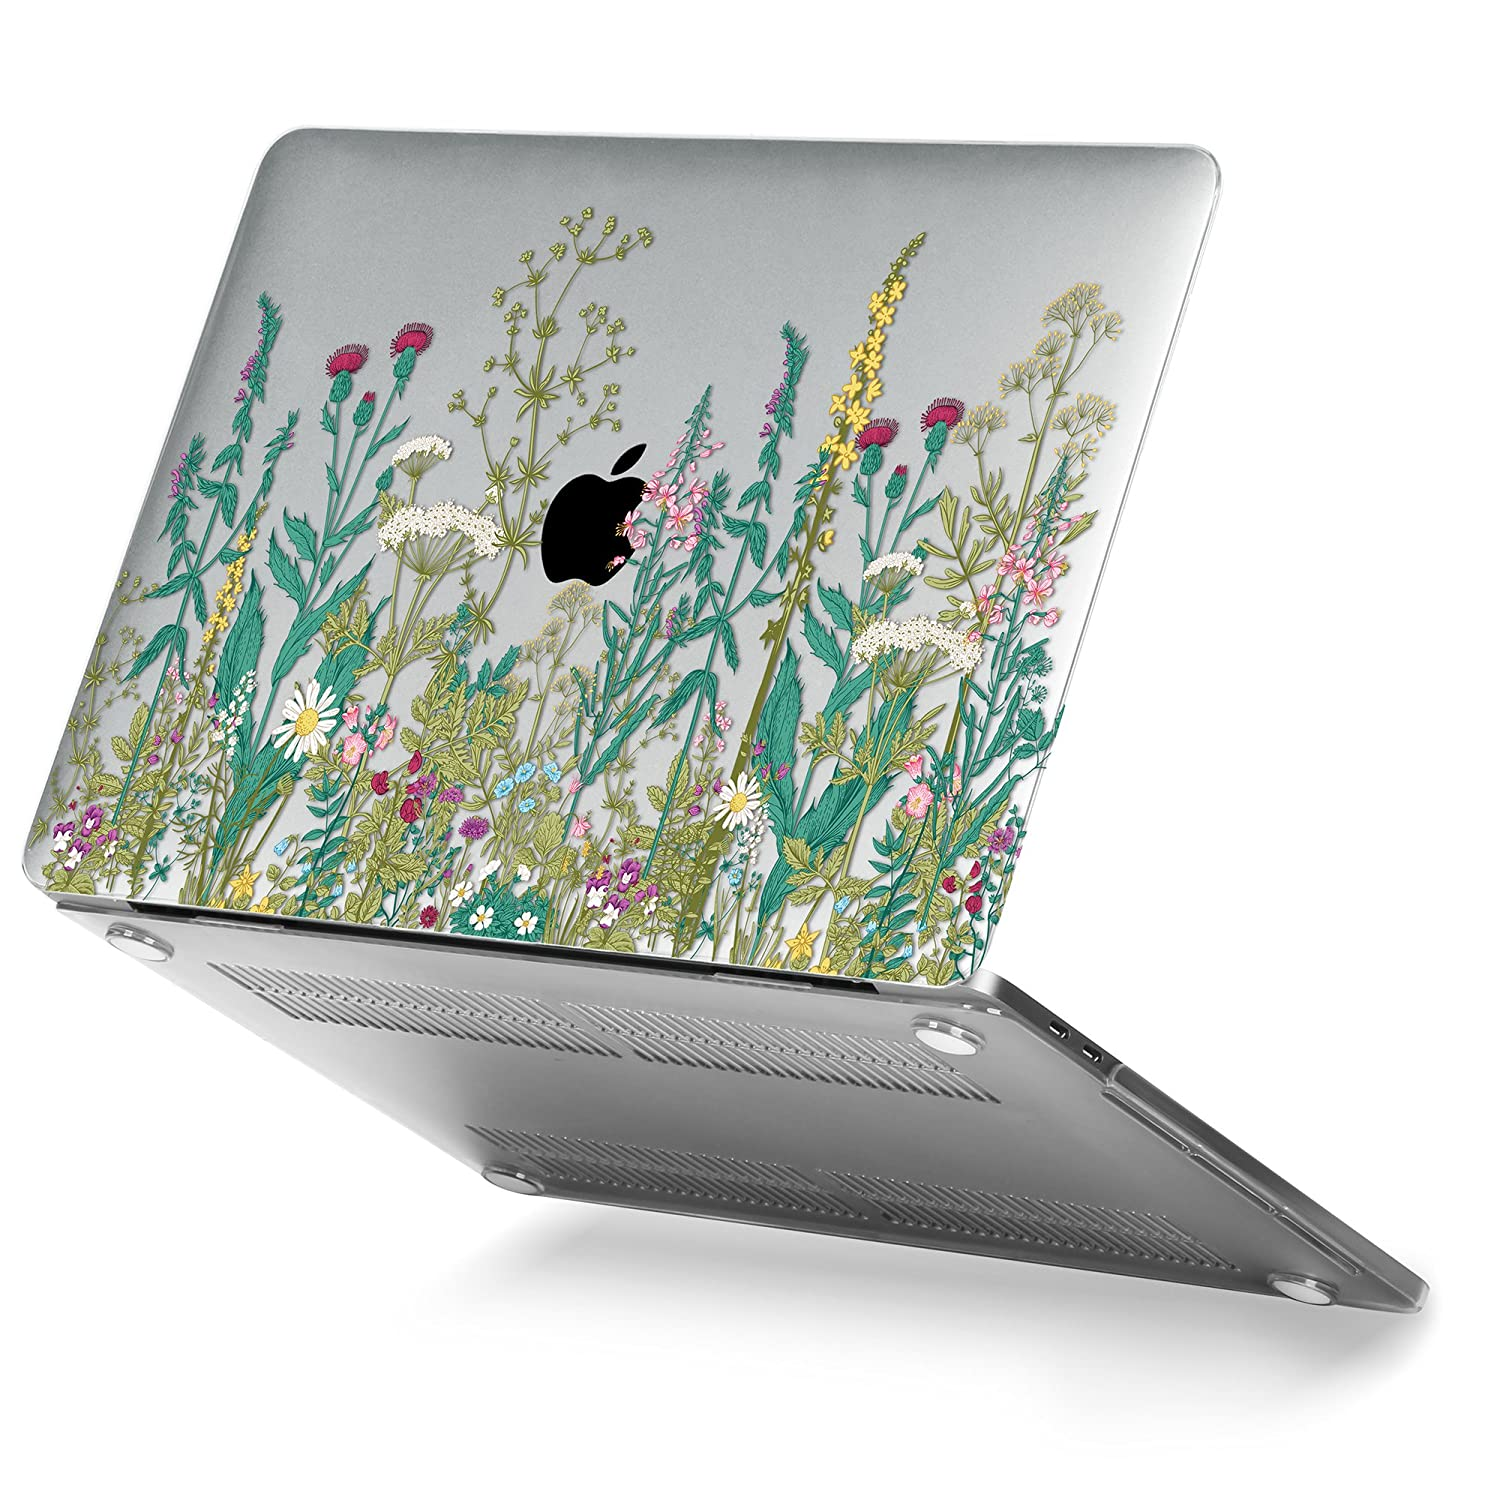 MacBook Pro 13 Case 2017 & 2016 Release A1706/A1708, GMYLE Plastic Hard Case Shell Cover for Apple New Macbook Pro 13 inch With/Without Touch Bar and Touch ID - Garden Flower Pattern